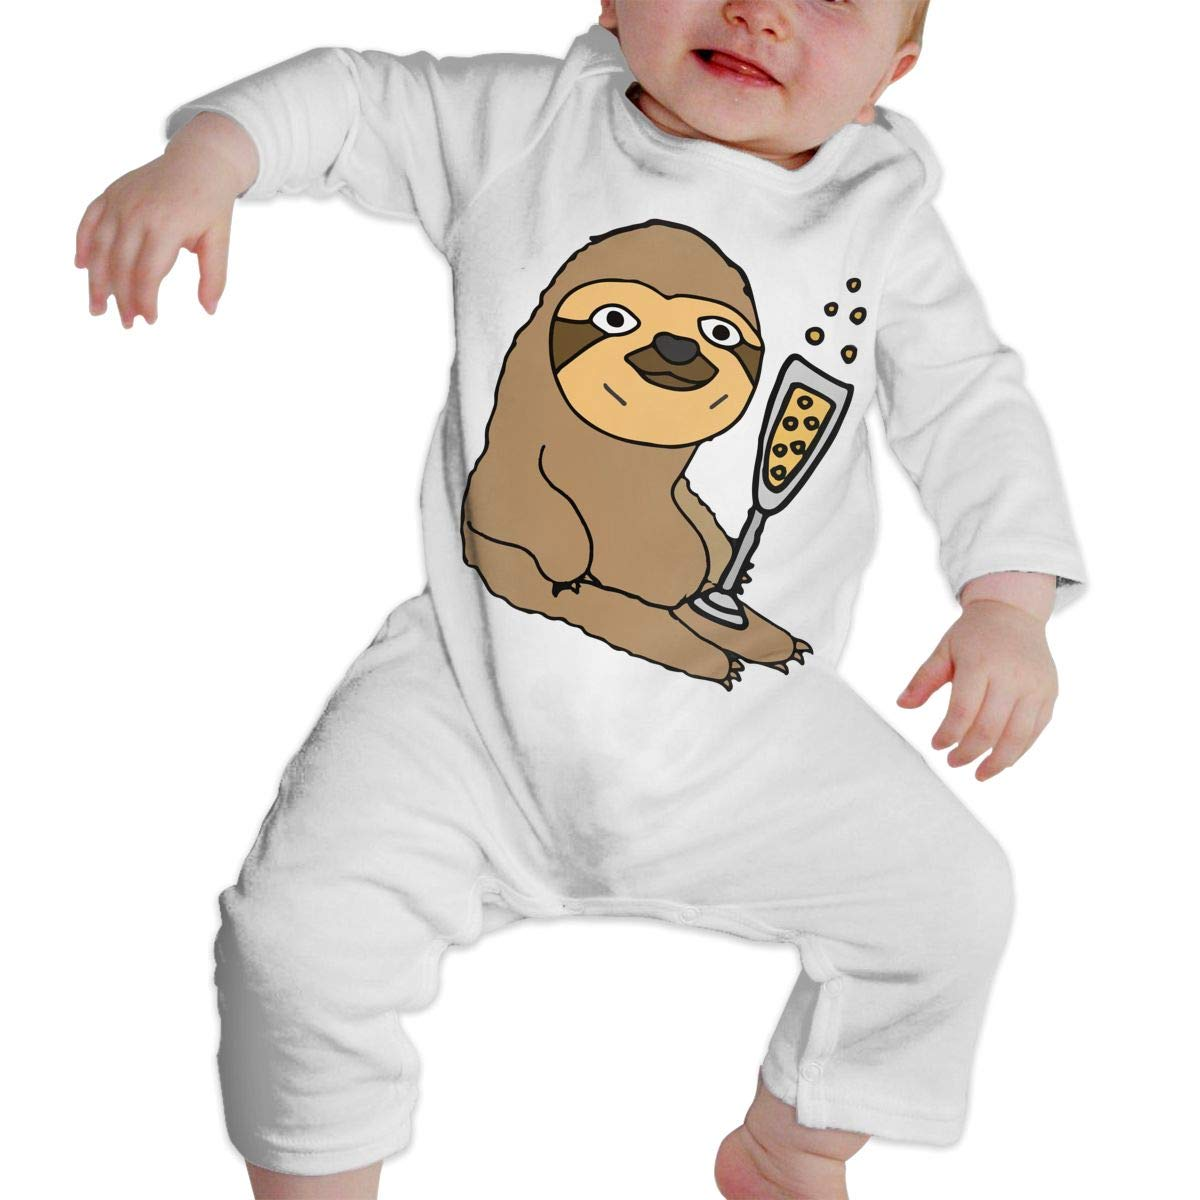 Mri-le1 Baby Girl Long Sleeve Jumpsuit Sloth Drinking Champagne Toddler Jumpsuit